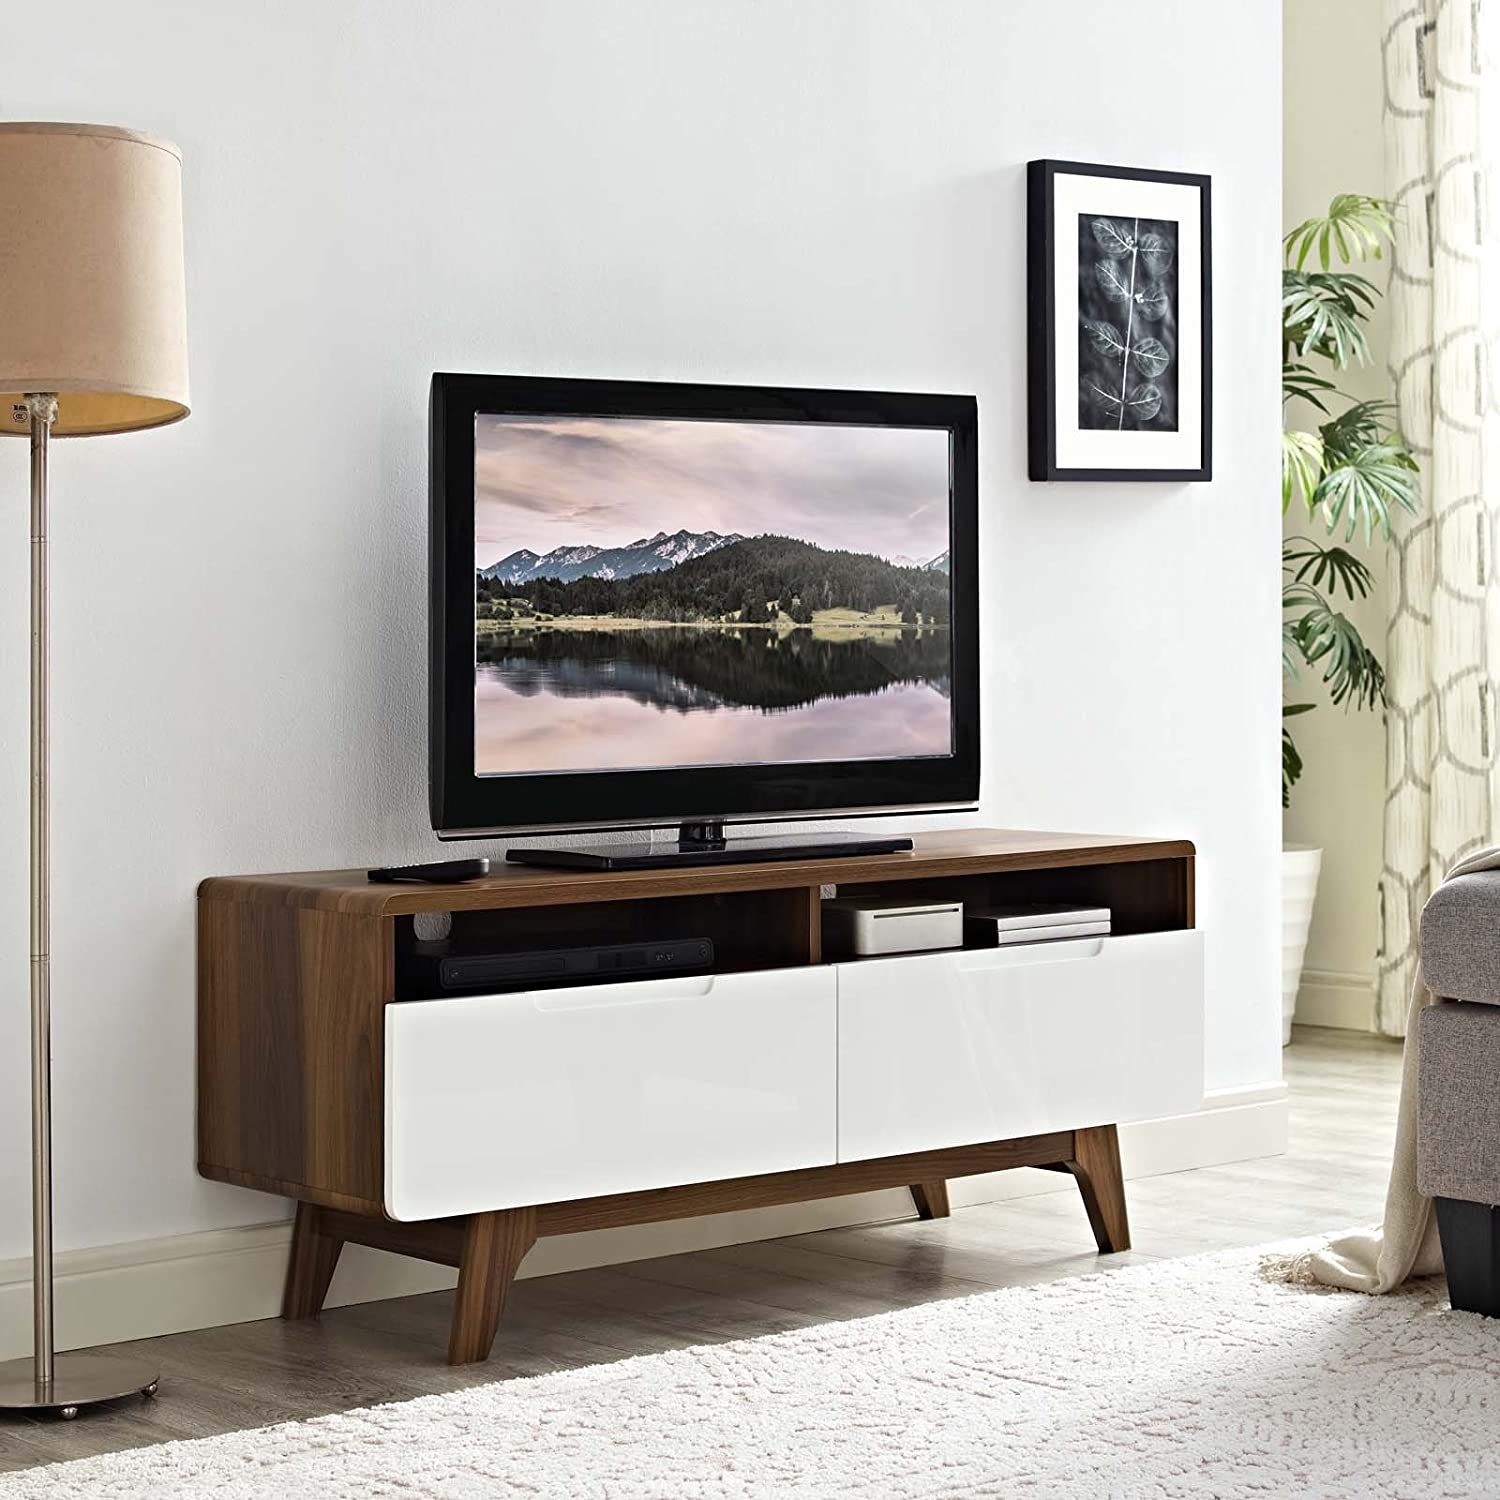 Amazon.com: Modway Origin Mid-Century Modern 47 Inch TV Stand in ...